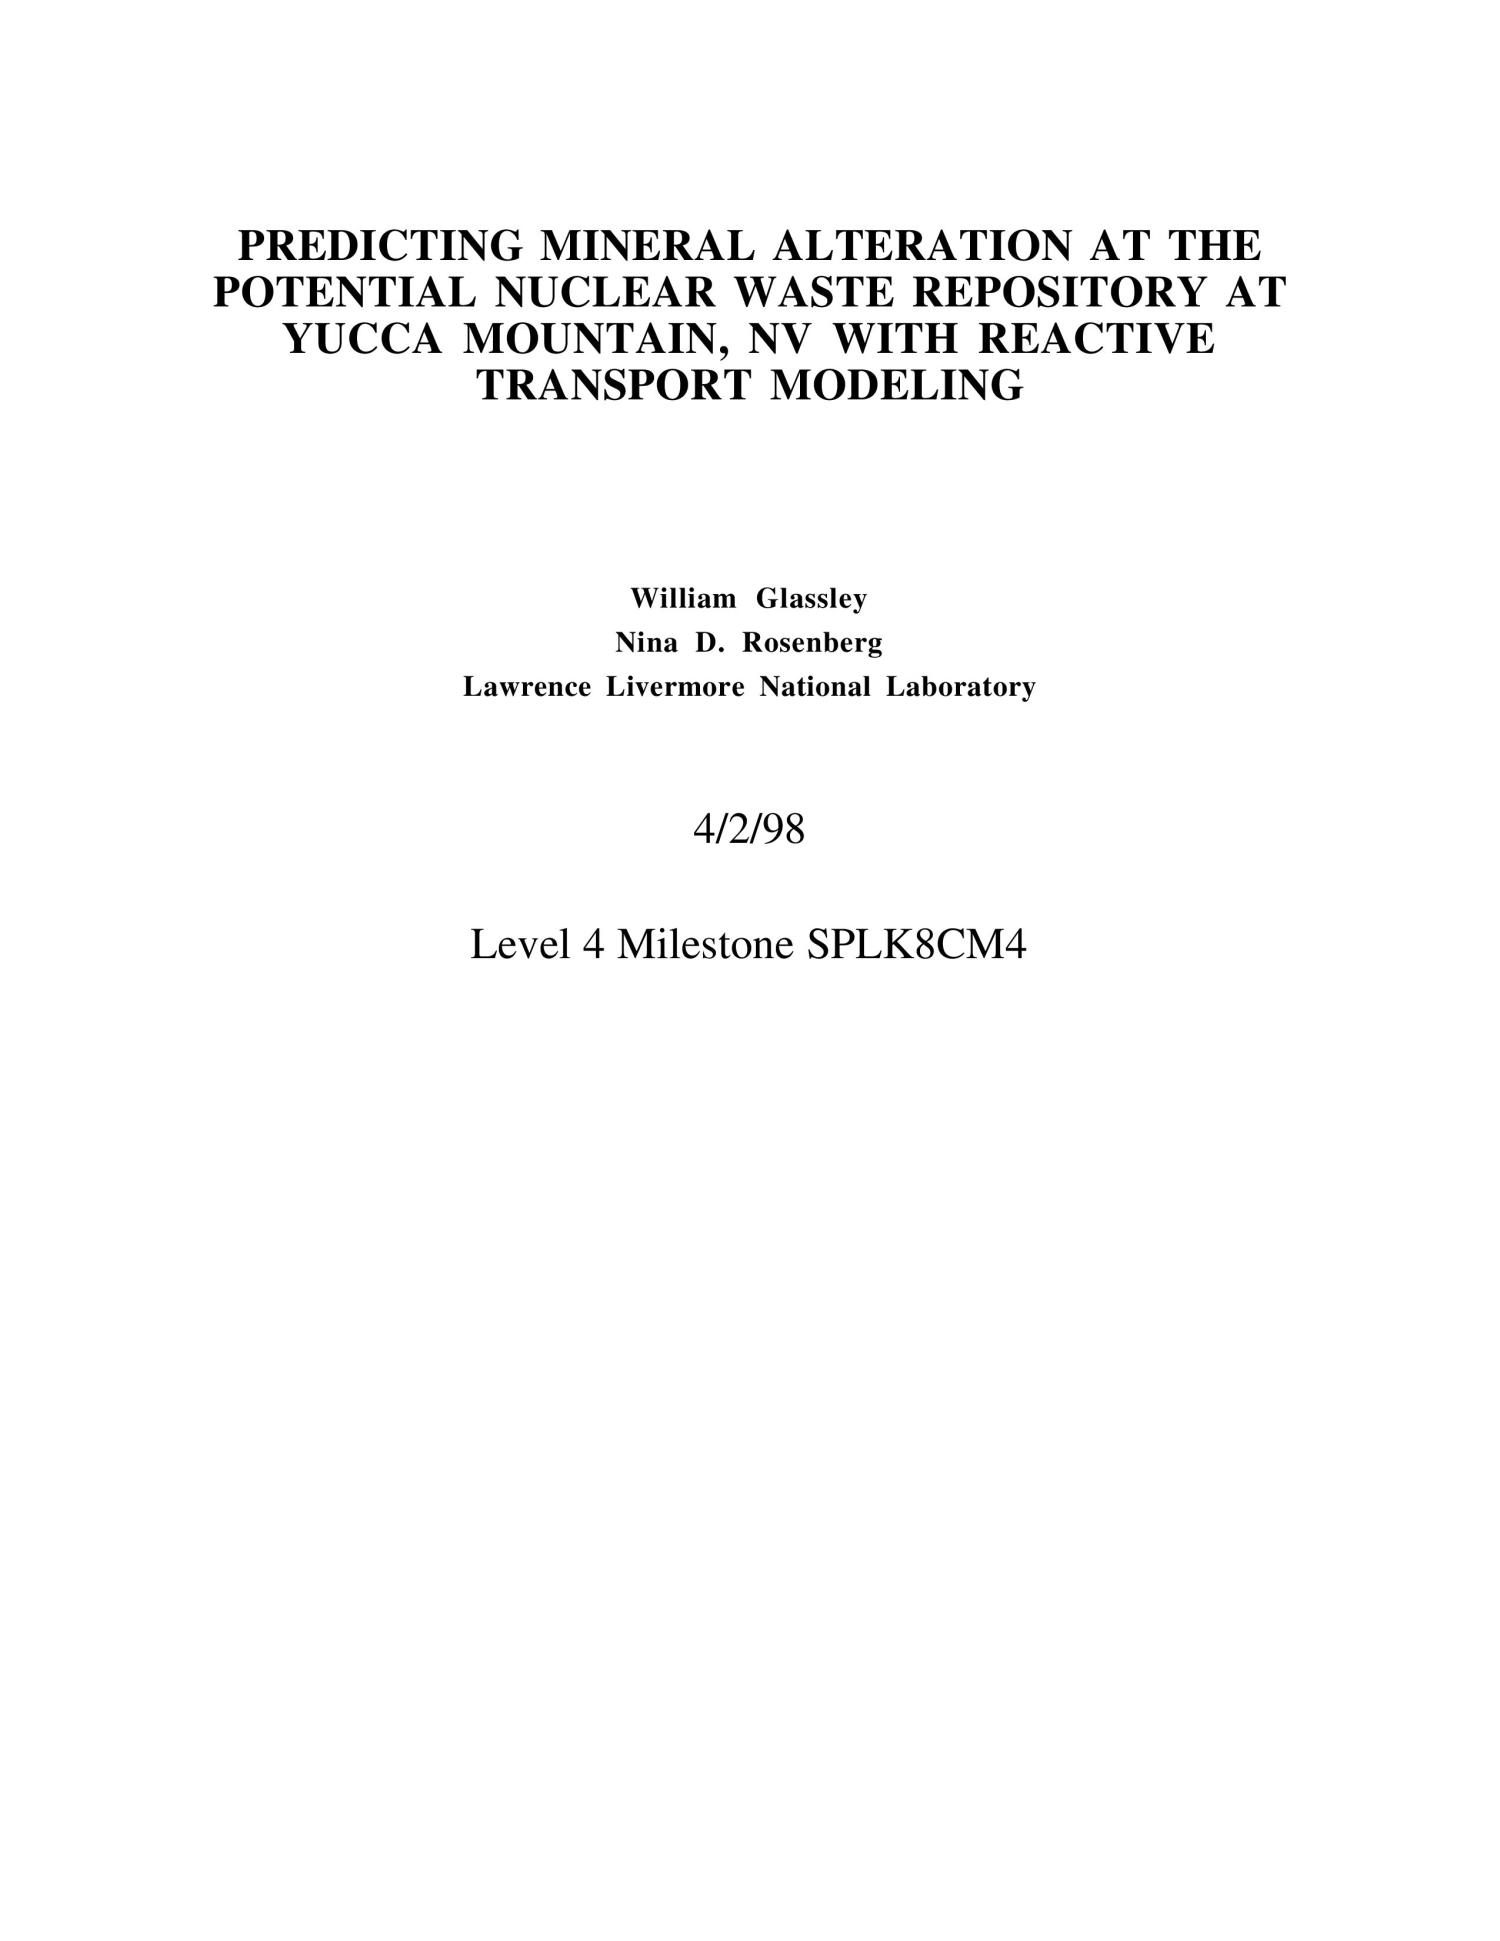 Predicting mineral alteration at the potential nuclear waste repository at Yucca Mountain, NV with reactive transport modeling                                                                                                      [Sequence #]: 3 of 43